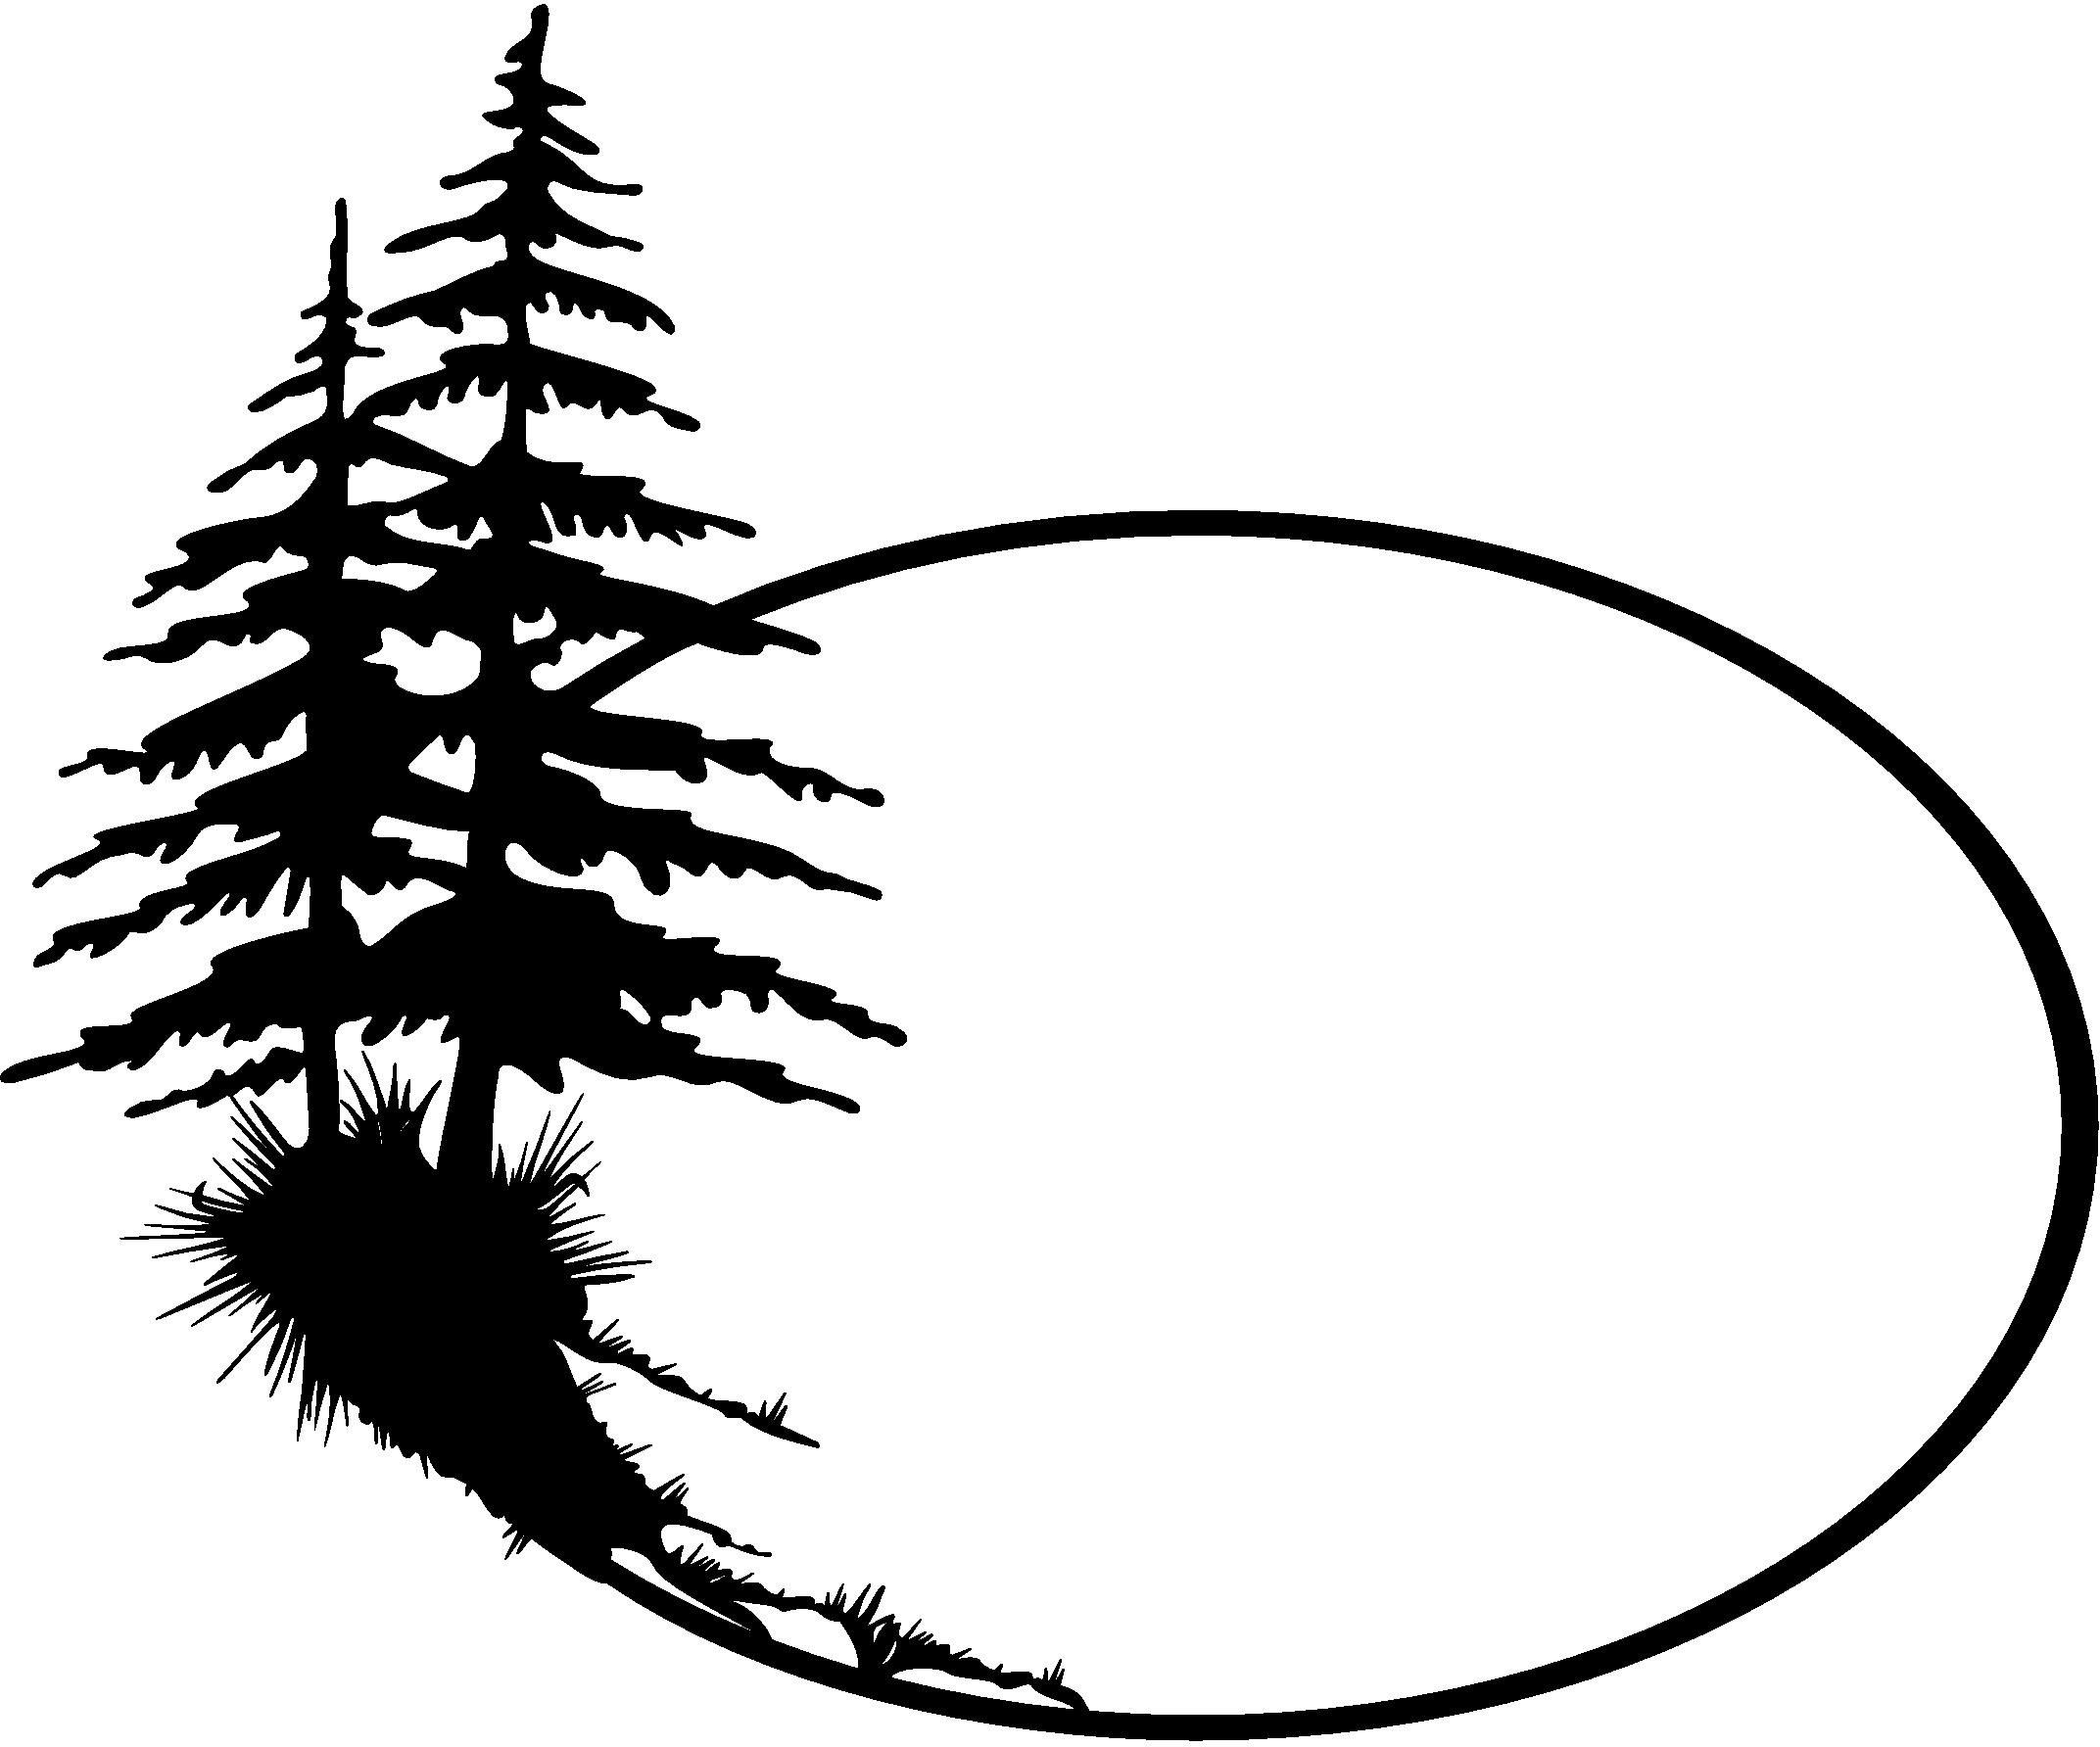 small resolution of pine tree silhouette clip art clipart pine